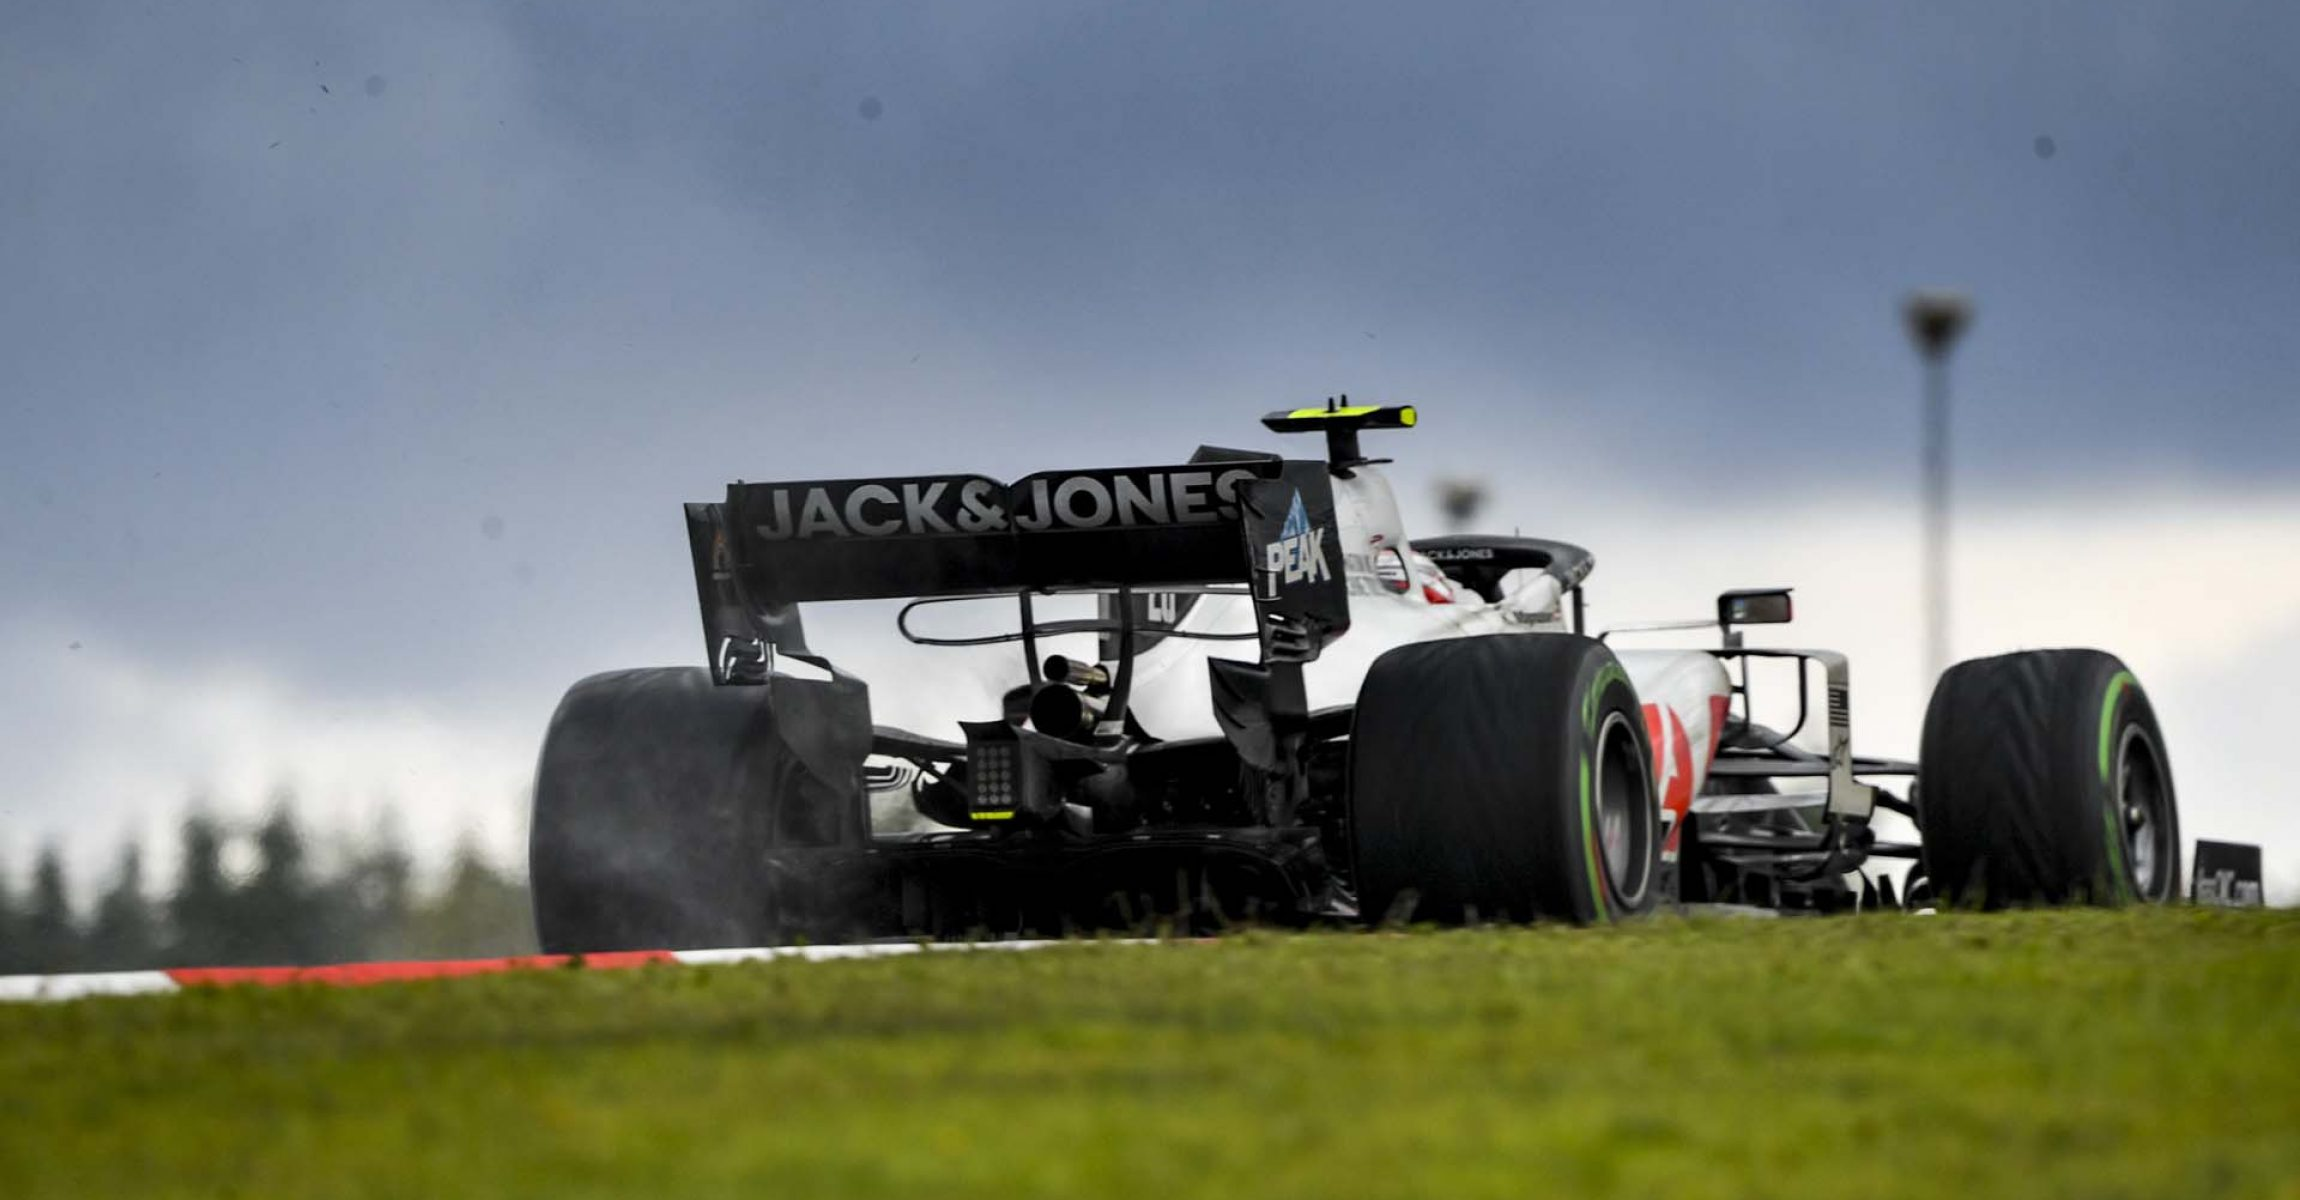 ISTANBUL PARK, TURKEY - NOVEMBER 15: Kevin Magnussen, Haas VF-20 during the Turkish GP at Istanbul Park on Sunday November 15, 2020, Turkey. (Photo by Mark Sutton / LAT Images)